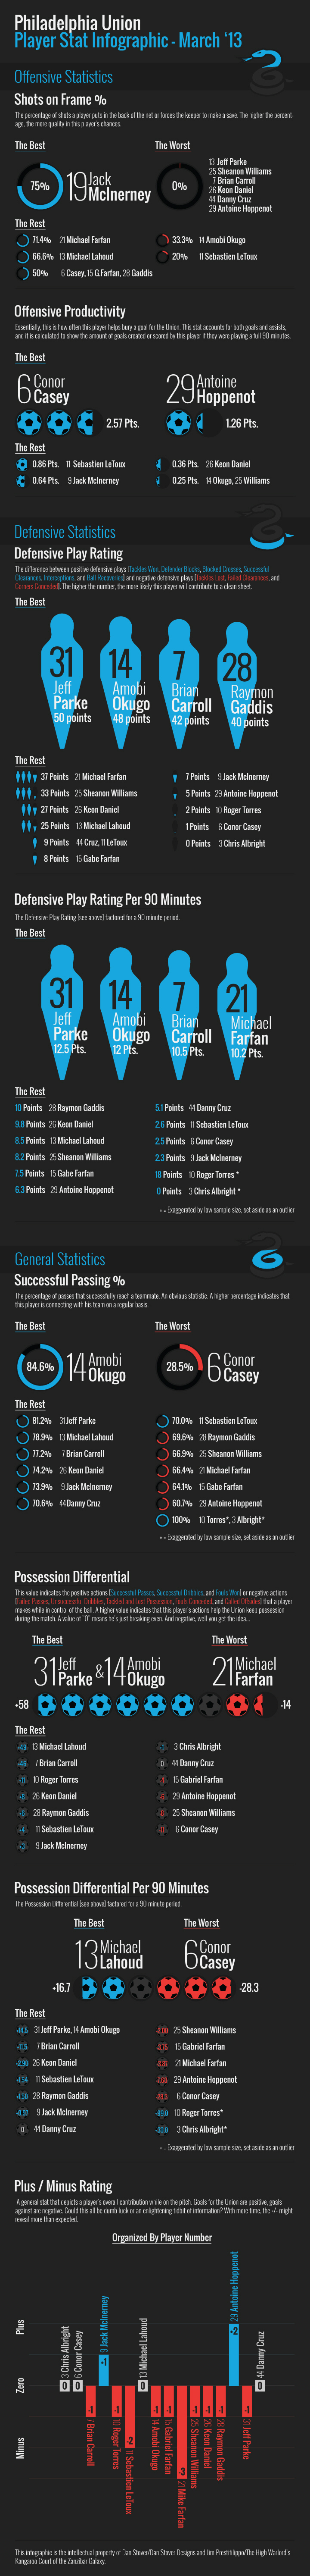 Union Infographic March 2013